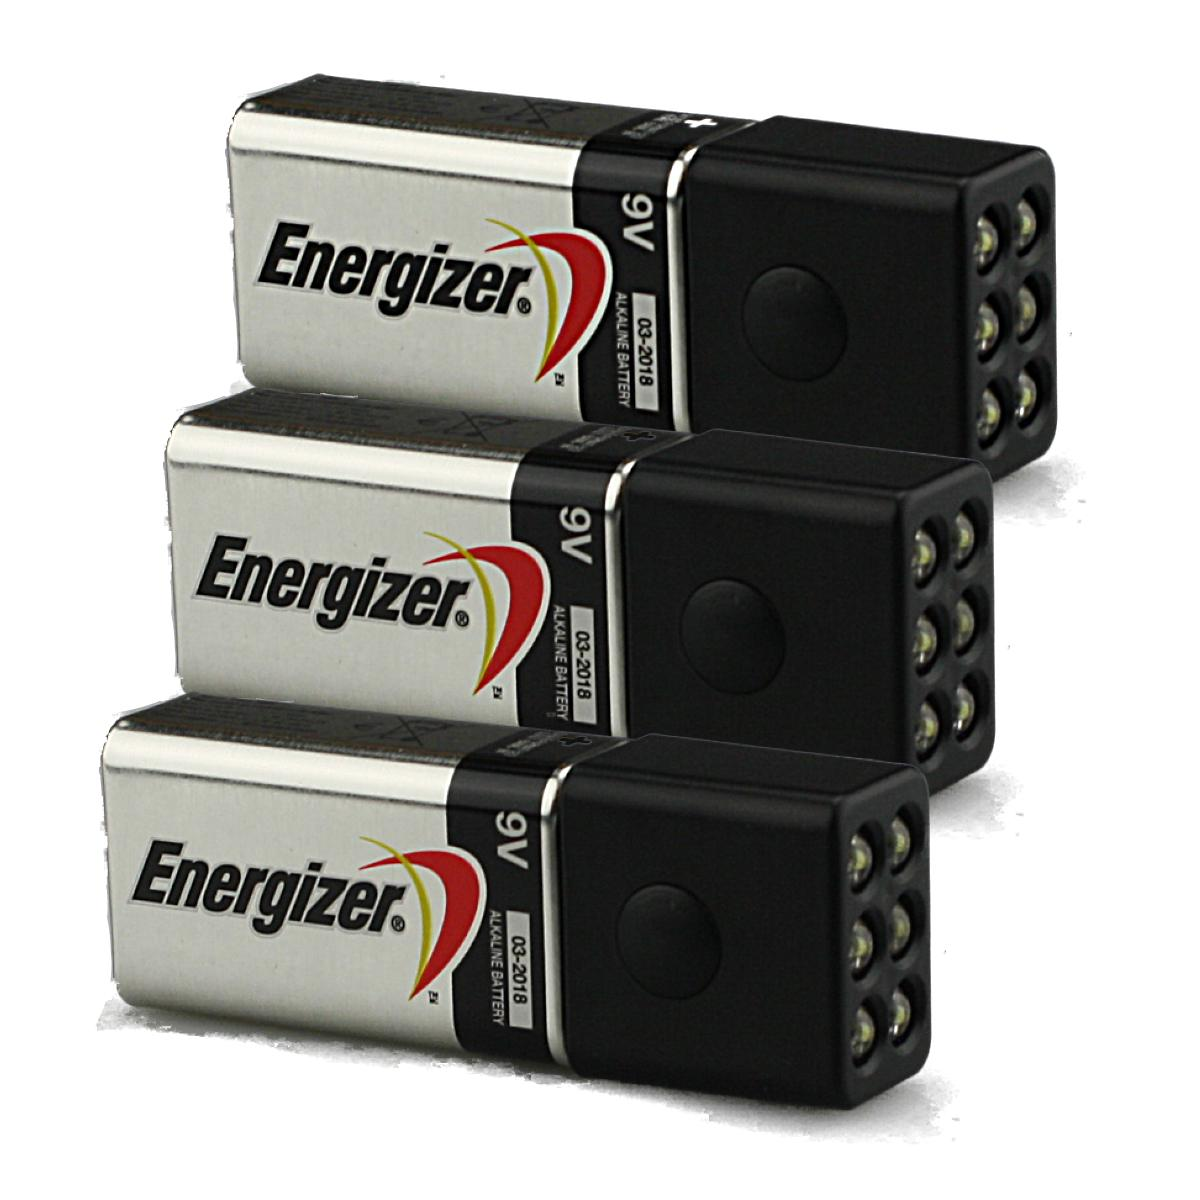 9 Volt Batterie 3 Pack Of Blocklite 6 Led Mini Flashlights W Energizer 9 Volt Batteries